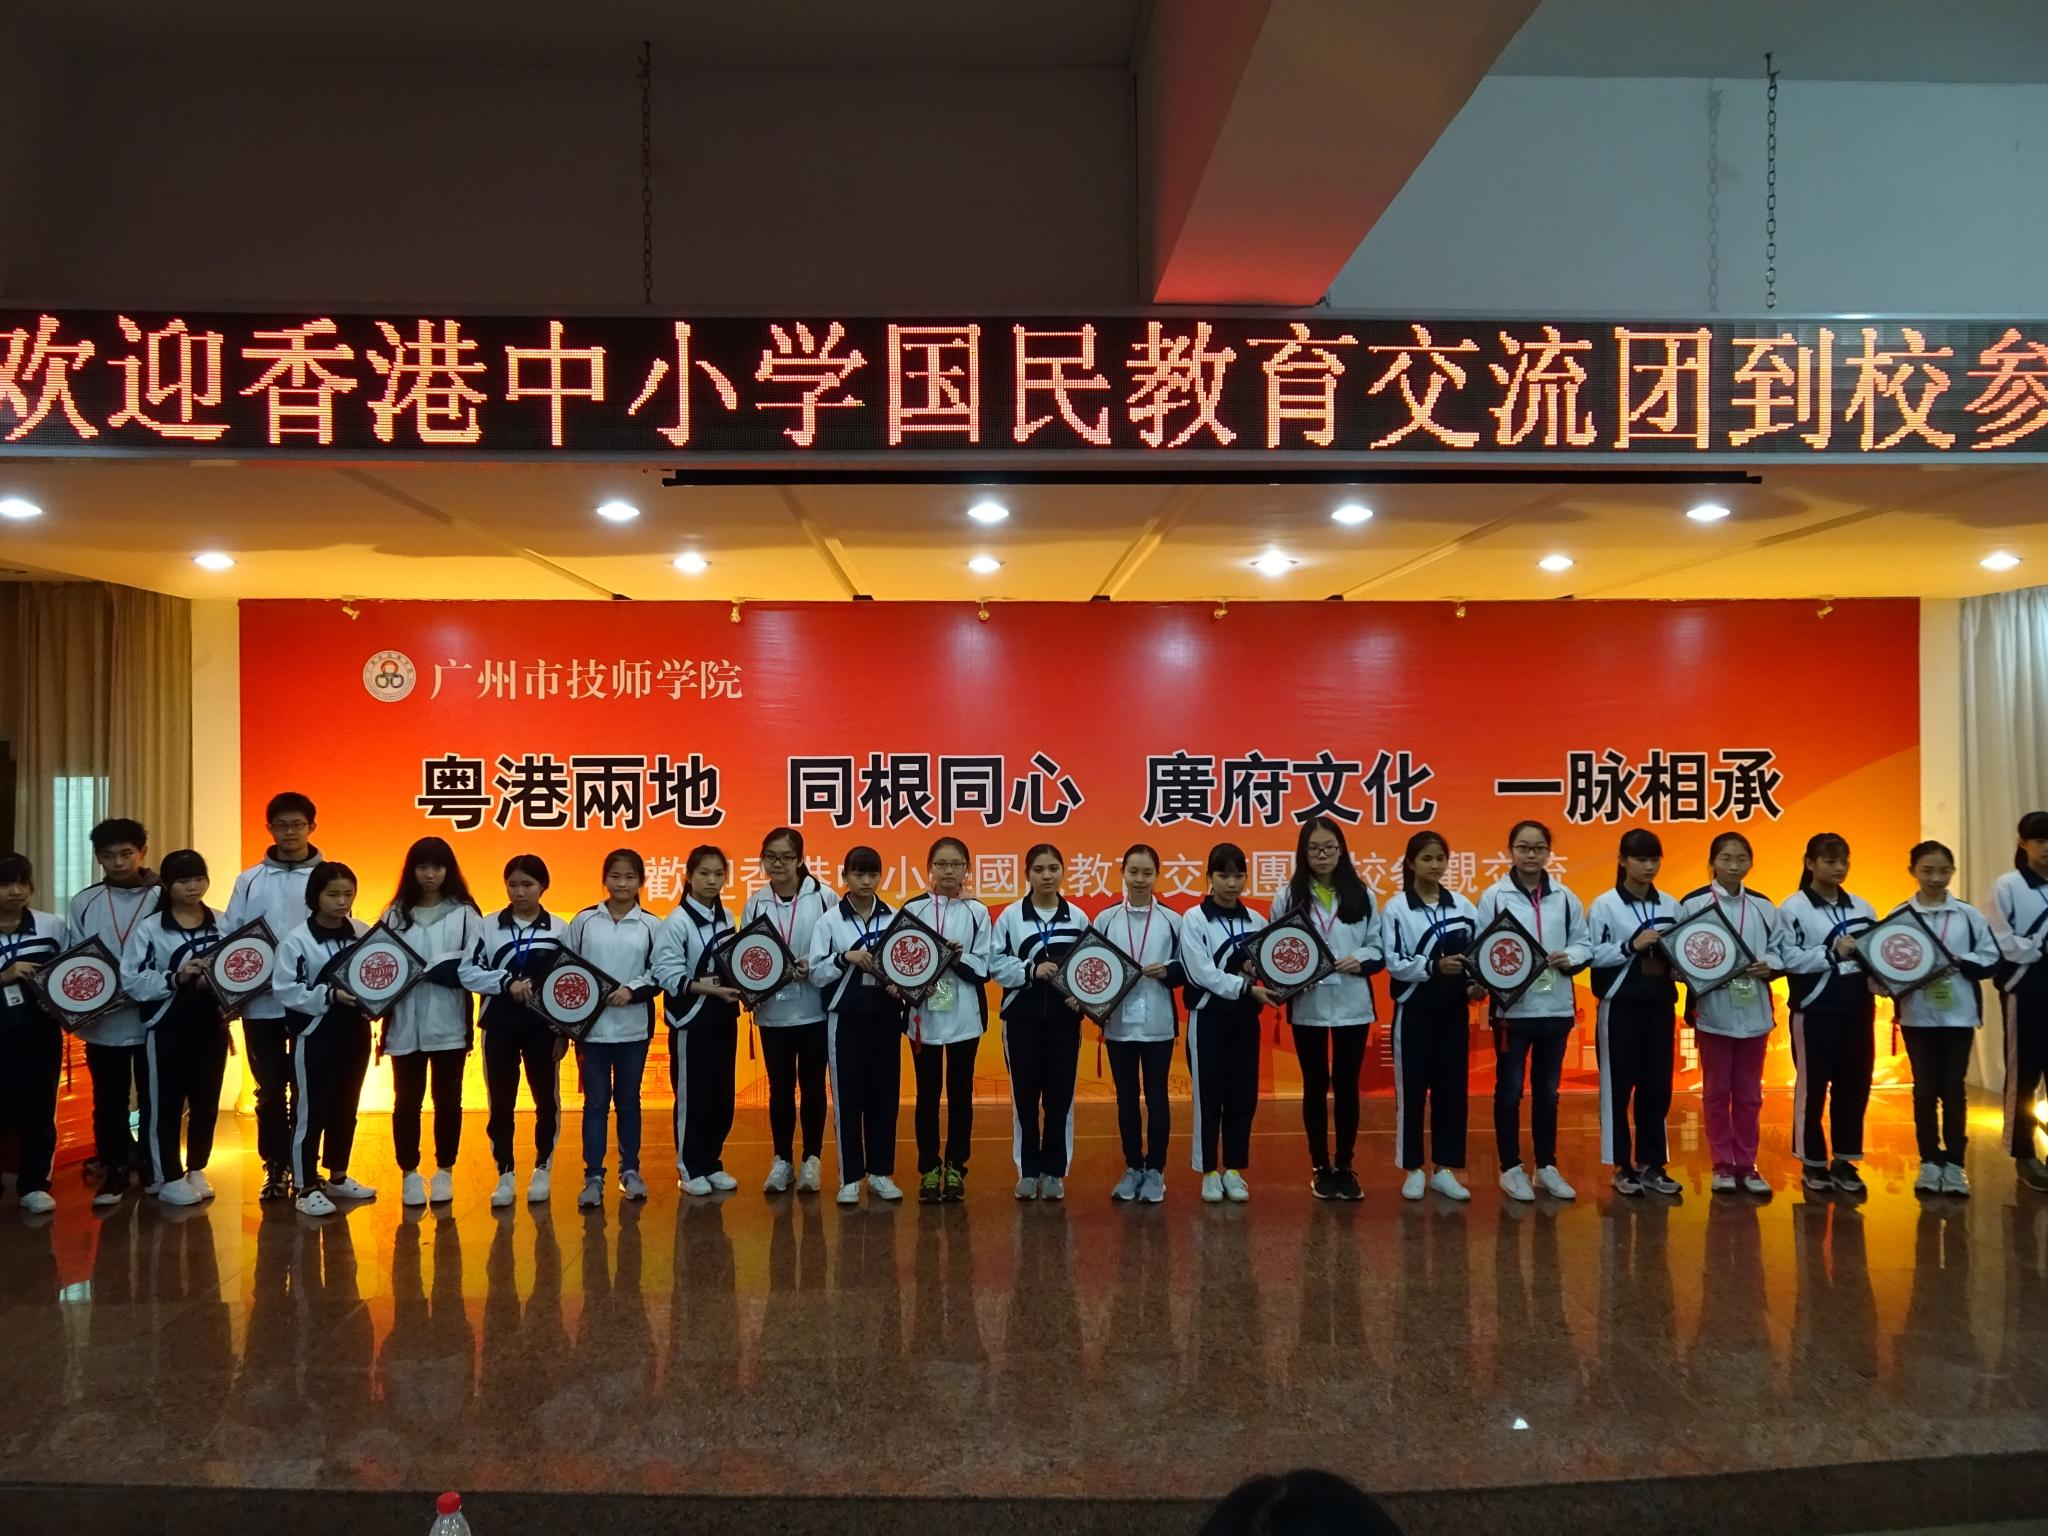 Students from Guangzhou represented their school to present the souvenir to our Form 2 students.